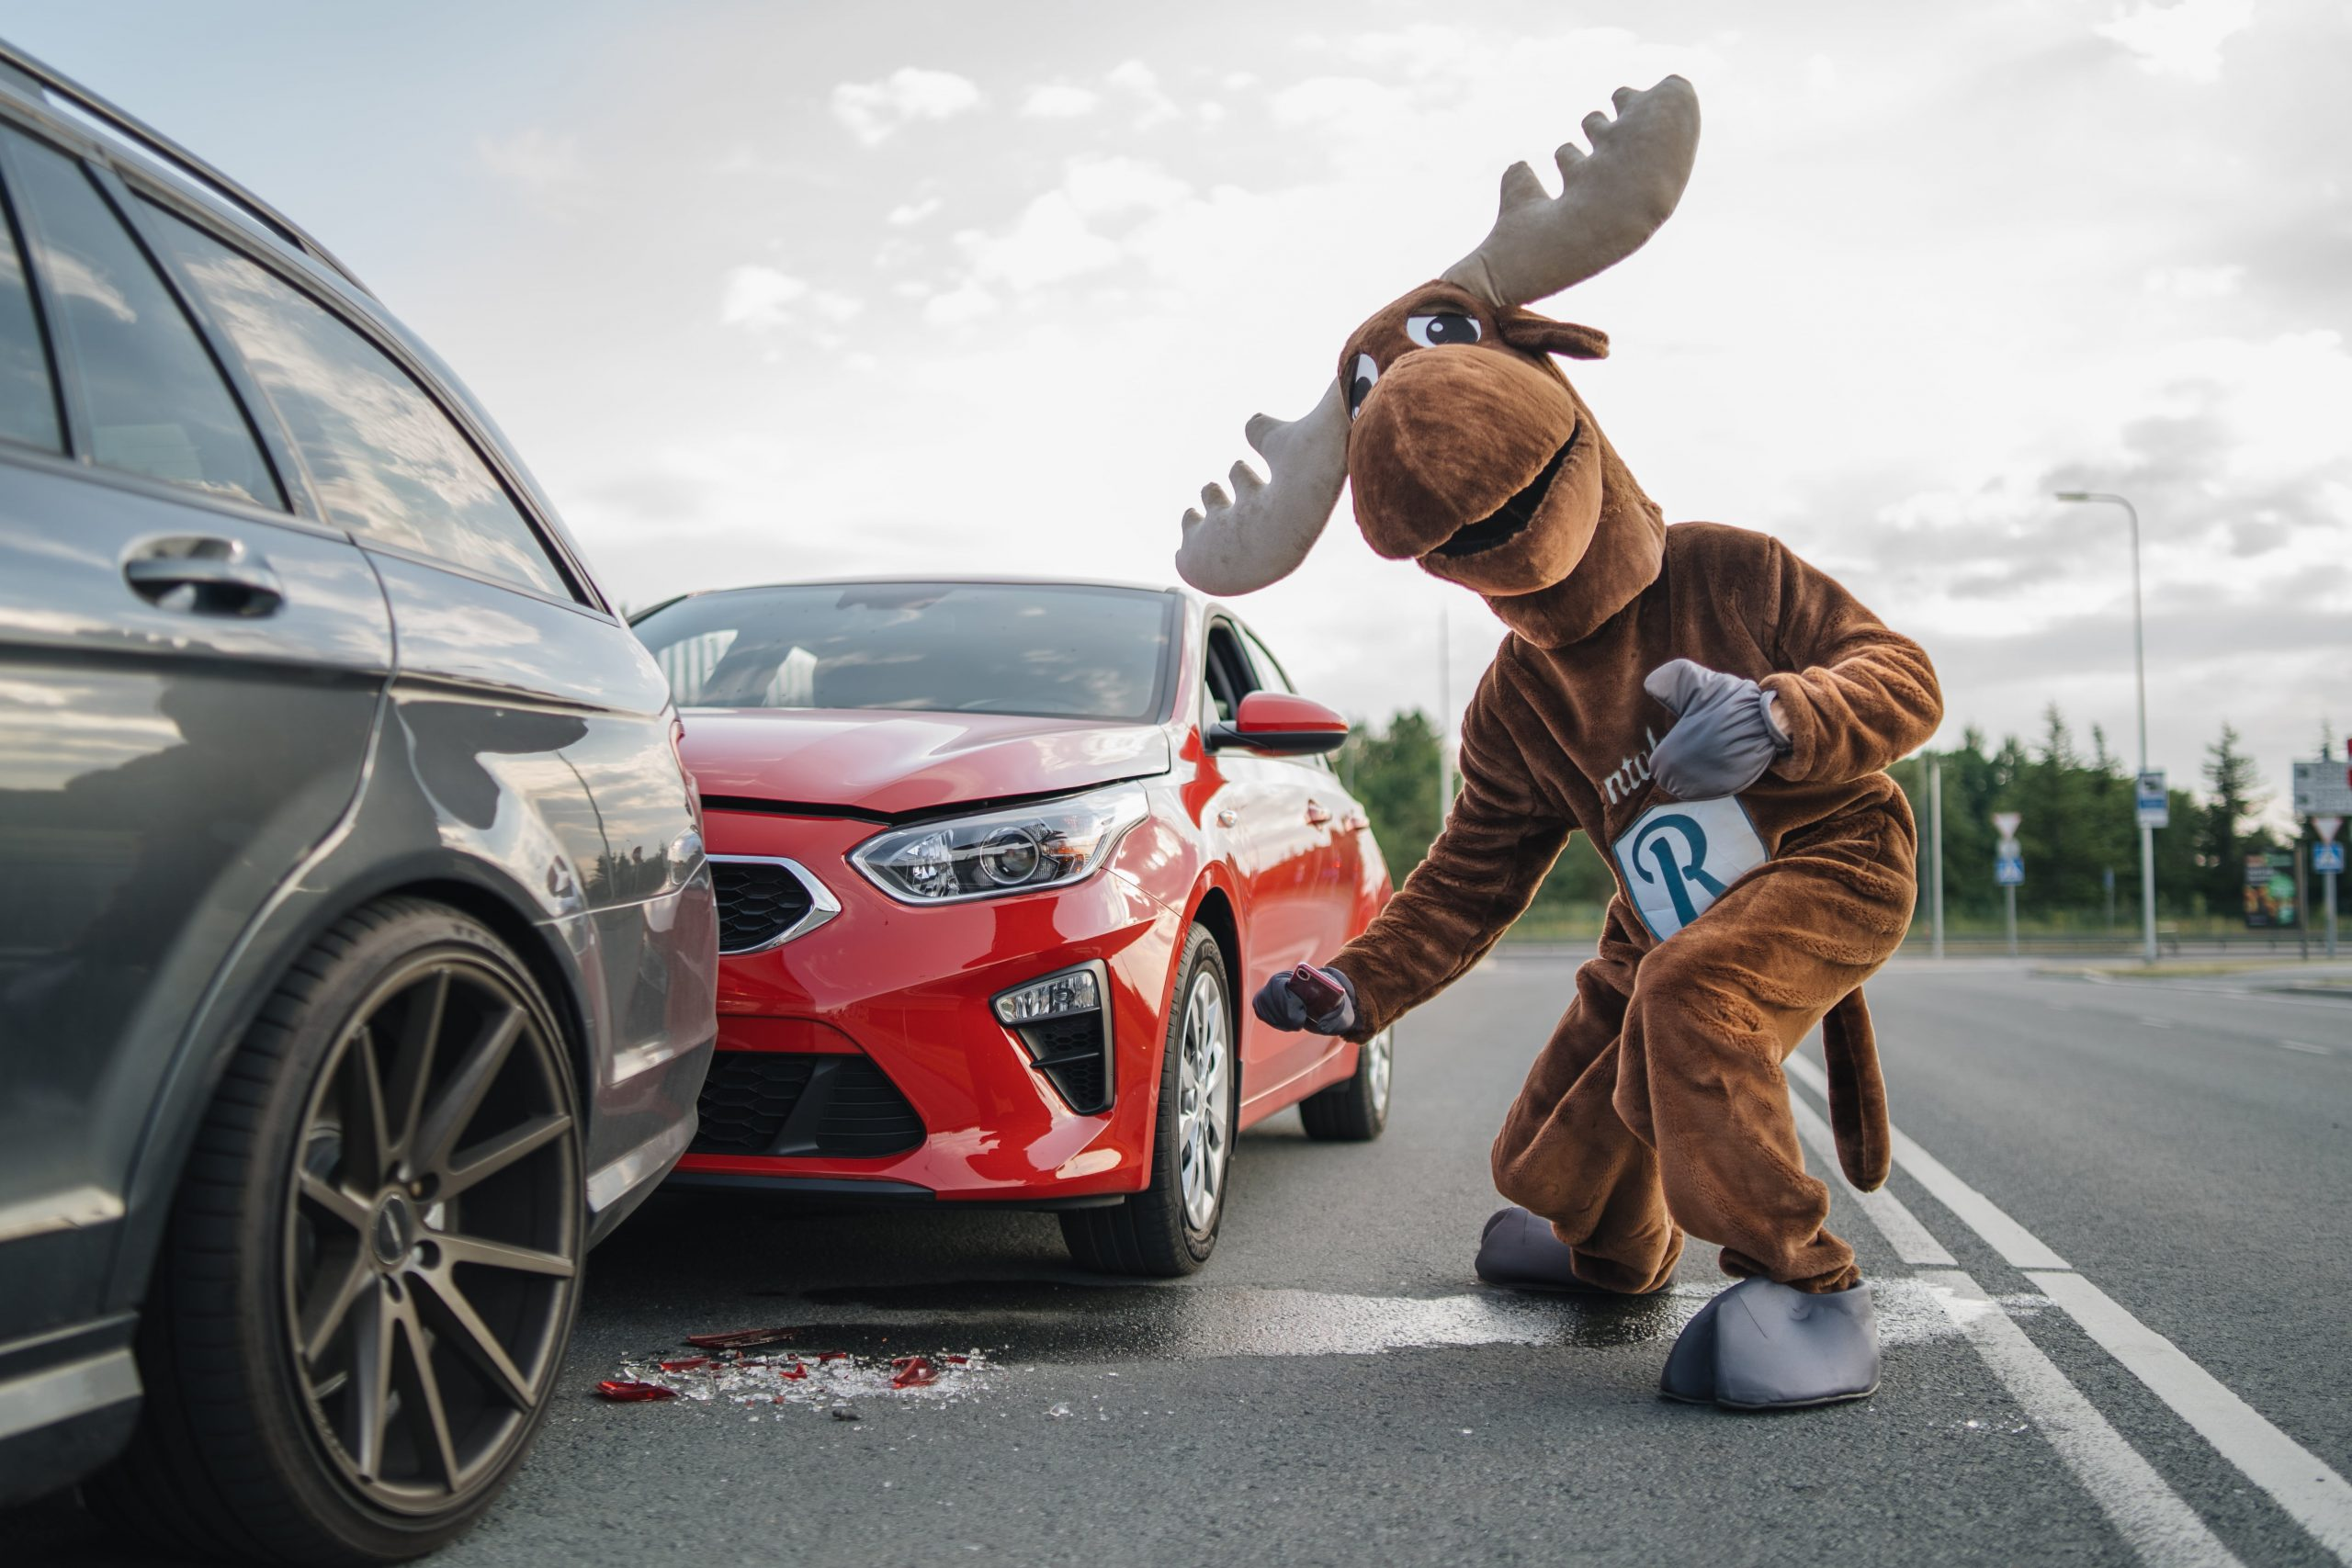 Rental Moose mascot photographing red Kia, damaged rental car. Getting evidence after a collision in a rental car is crucial.